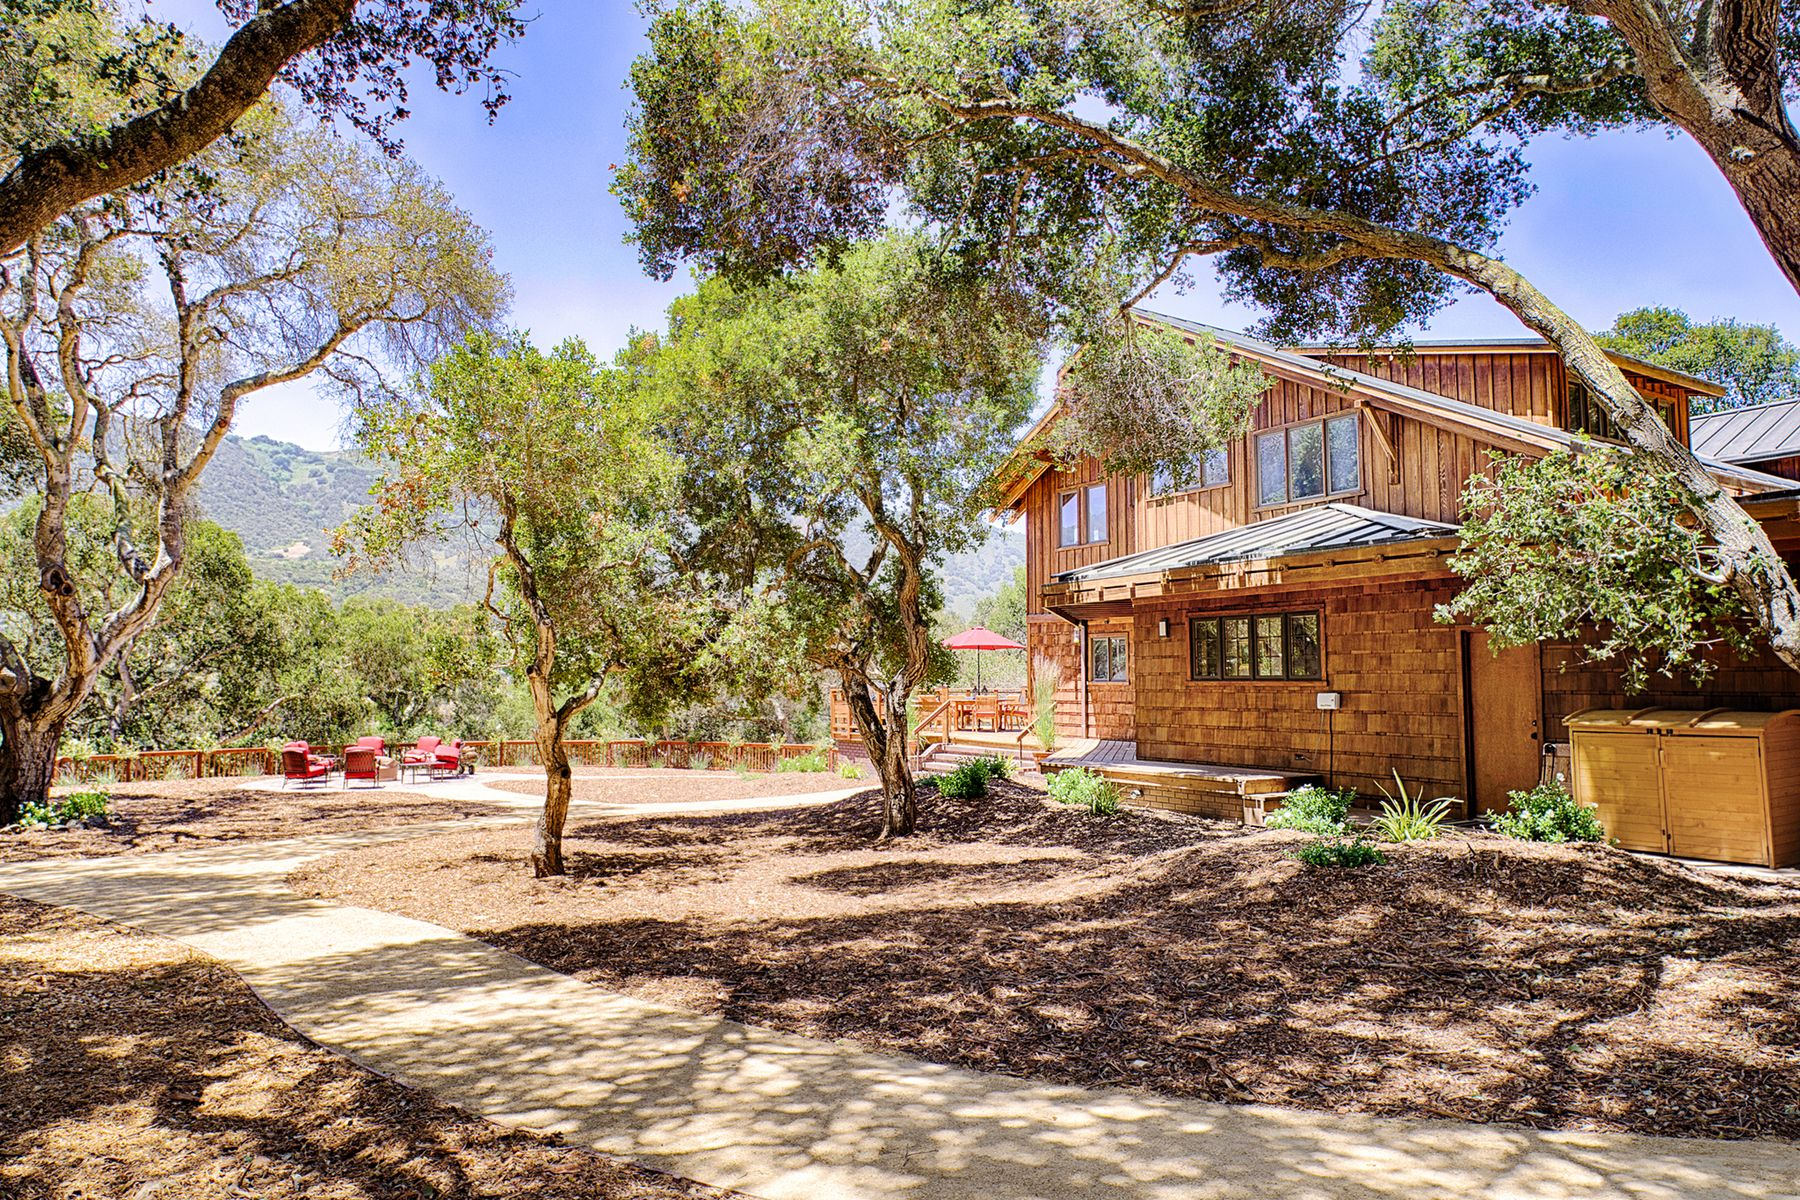 Single Family Homes for Sale at 7 La Rancheria Carmel Valley, California 93924 United States